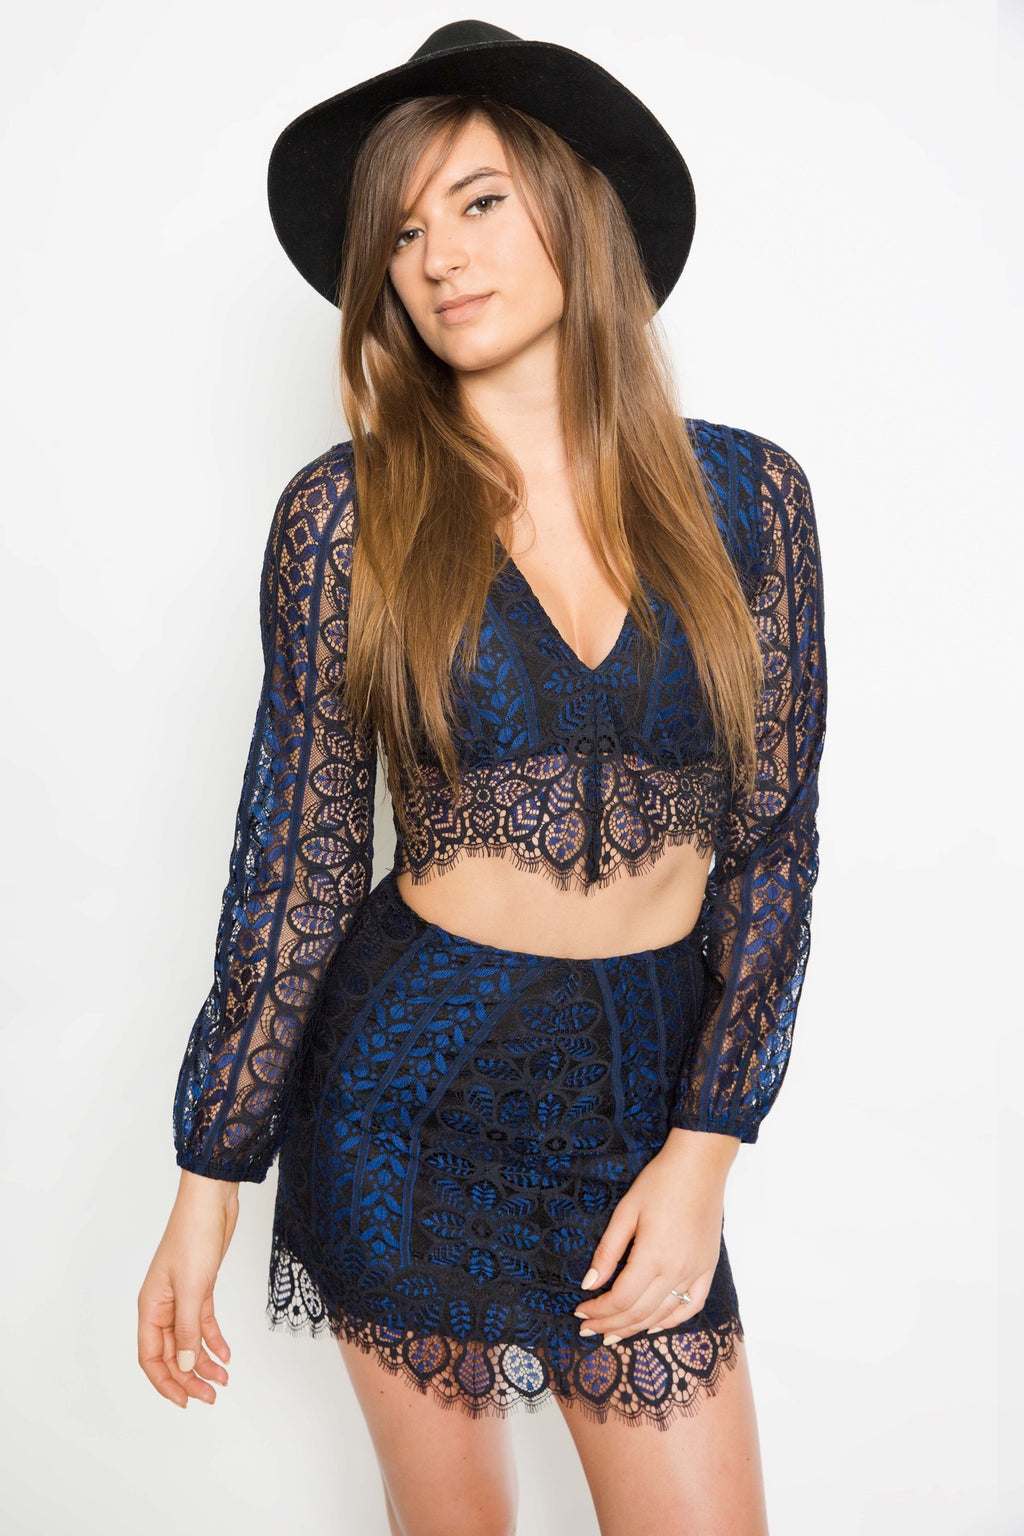 Lyla Skirt in Navy/Black - Boho Bum Island